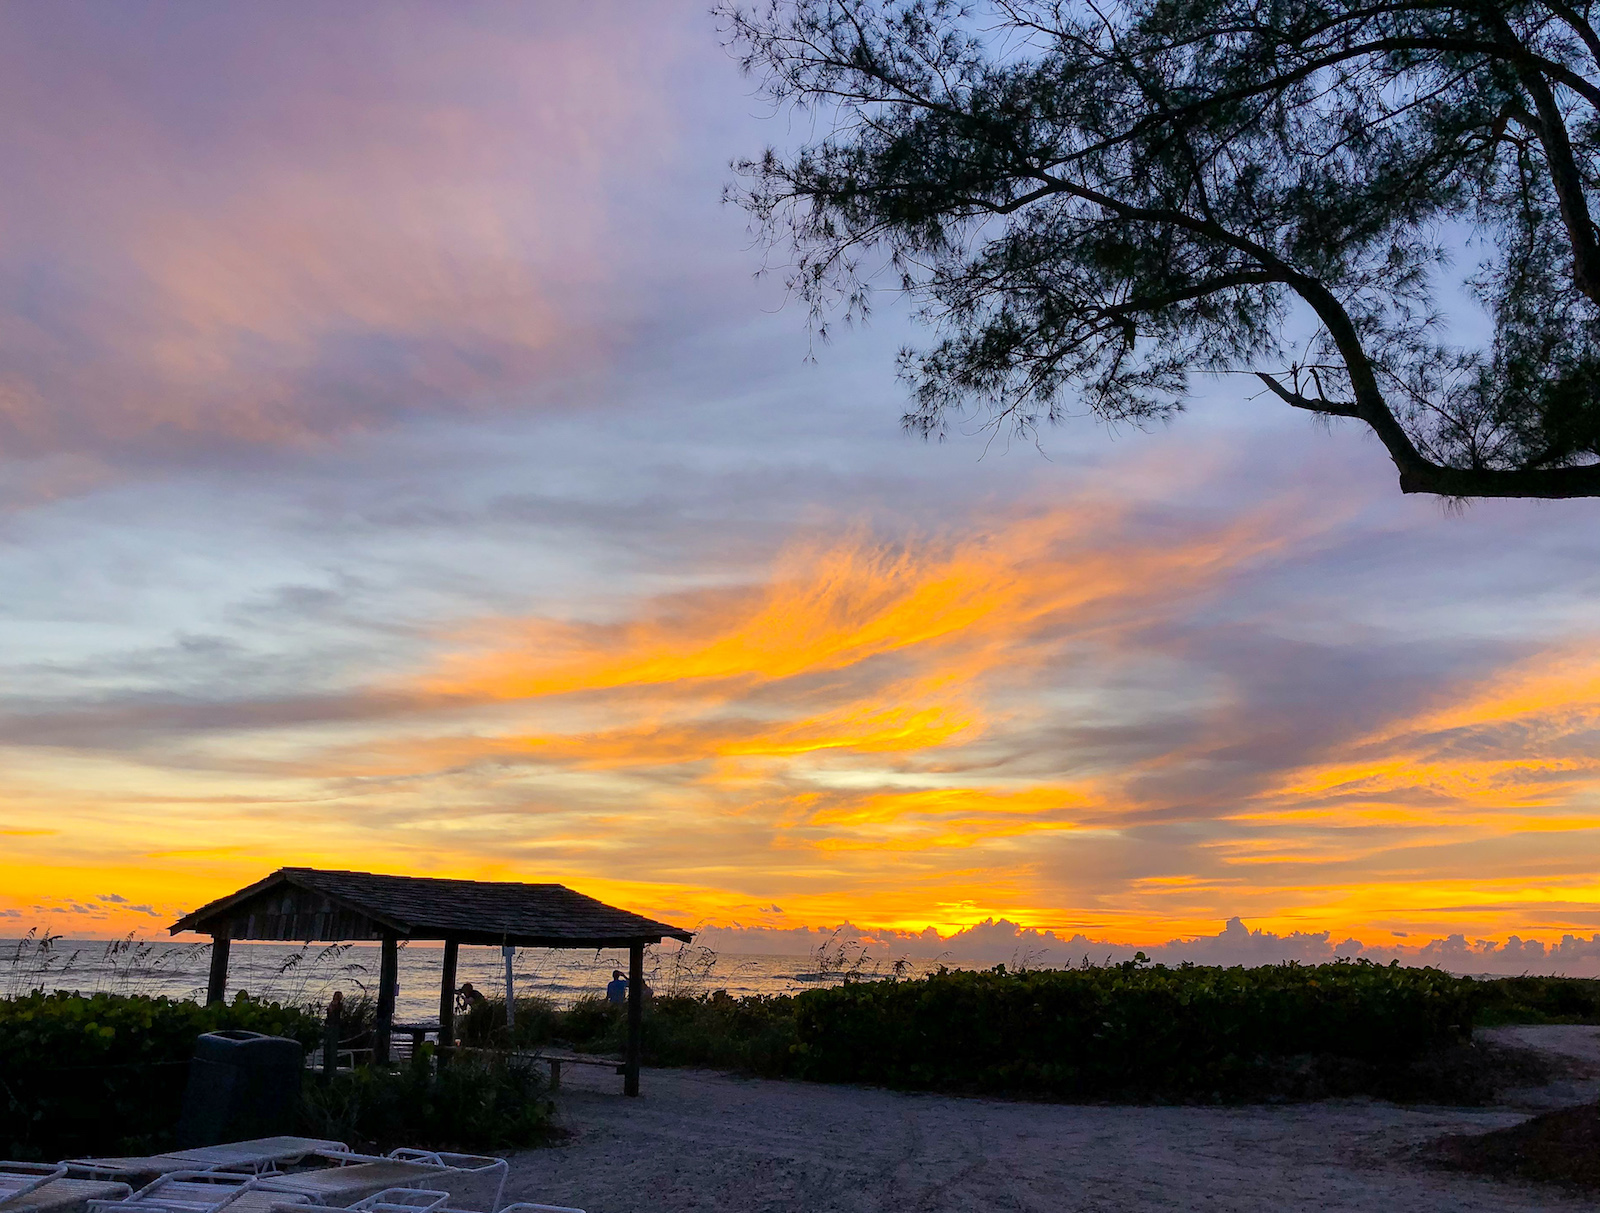 Sunset on Sanibel Island. Not practising the art of escapism here.